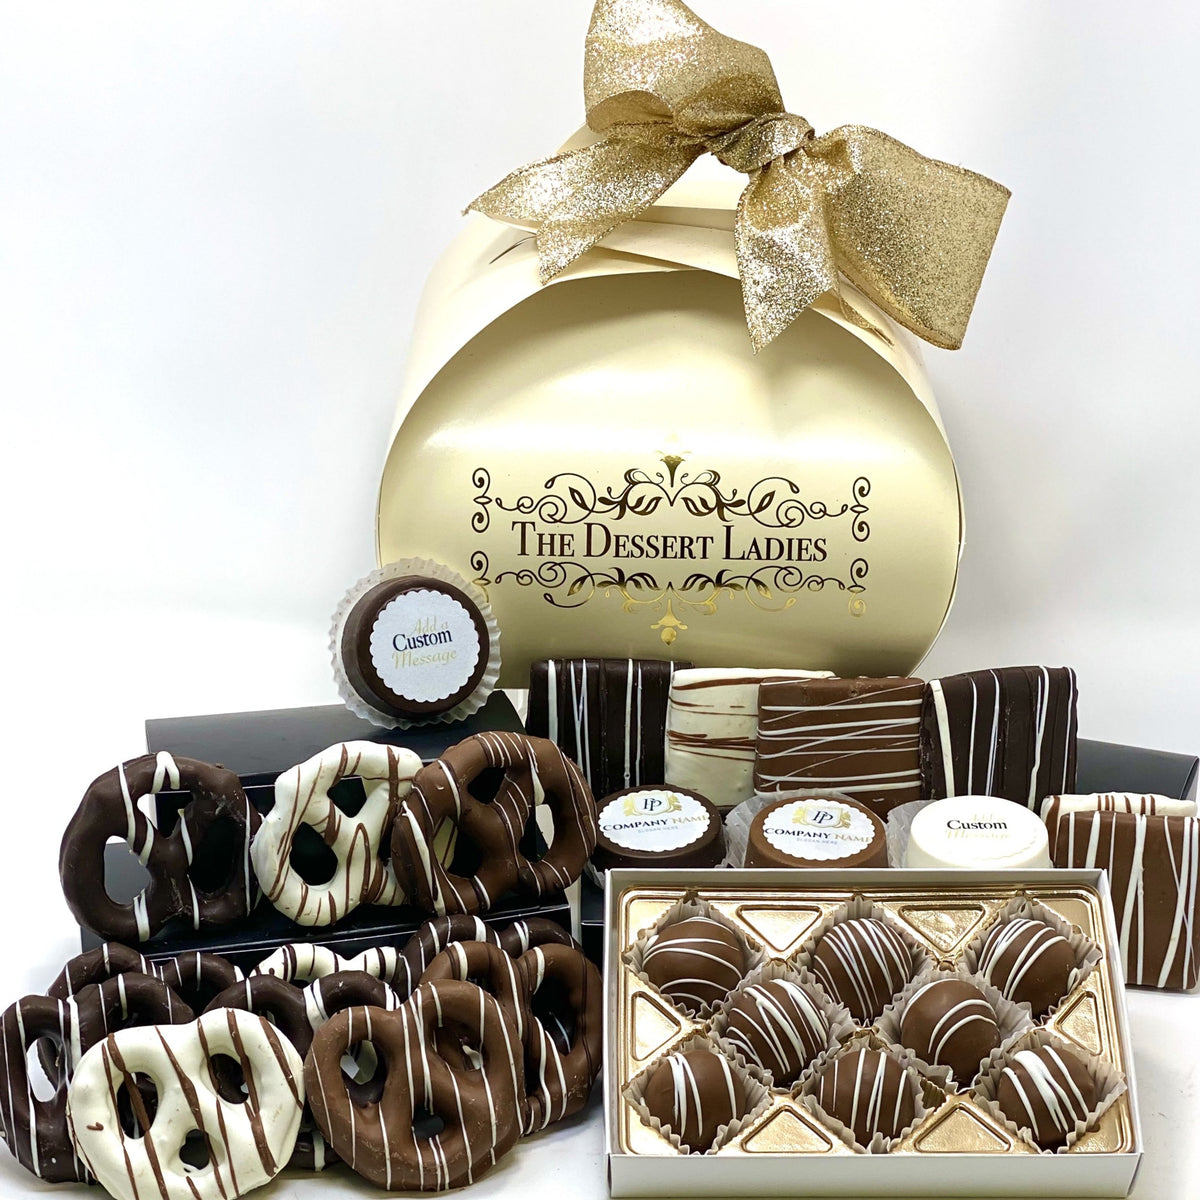 Custom Corporate Tulip Mixed Chocolate Box - The Dessert Ladies, custom corporate gifts, gourmet chocolate gifts,